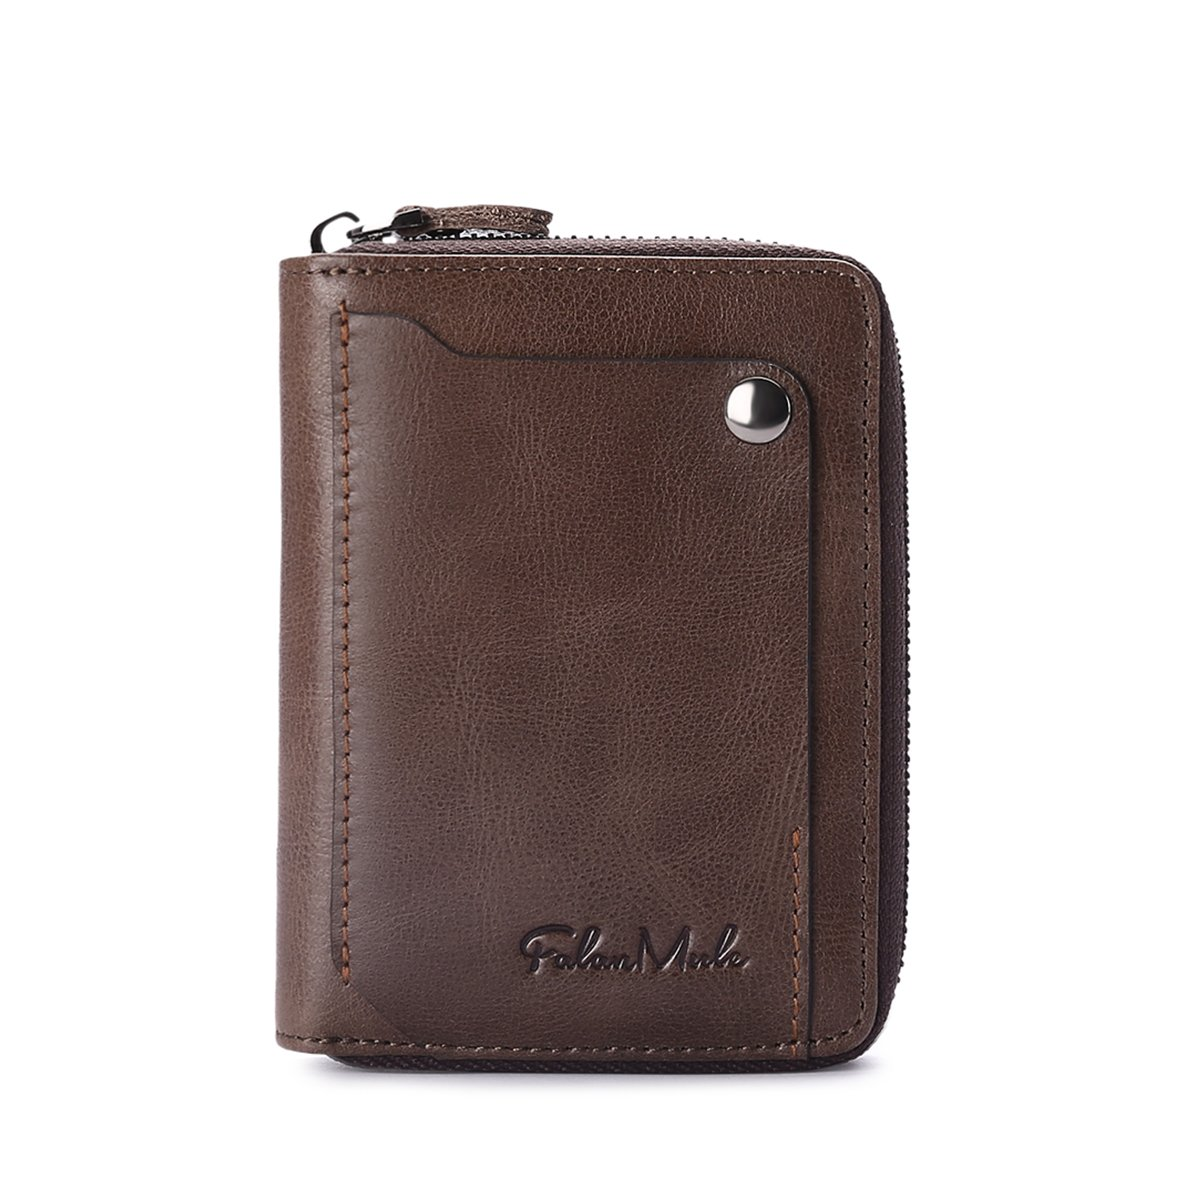 Slim Bifold RFID Blocking Men Wallet Leather Front Pocket Compact Design Zipper Closure Minimalist by Falan Mule (Image #2)